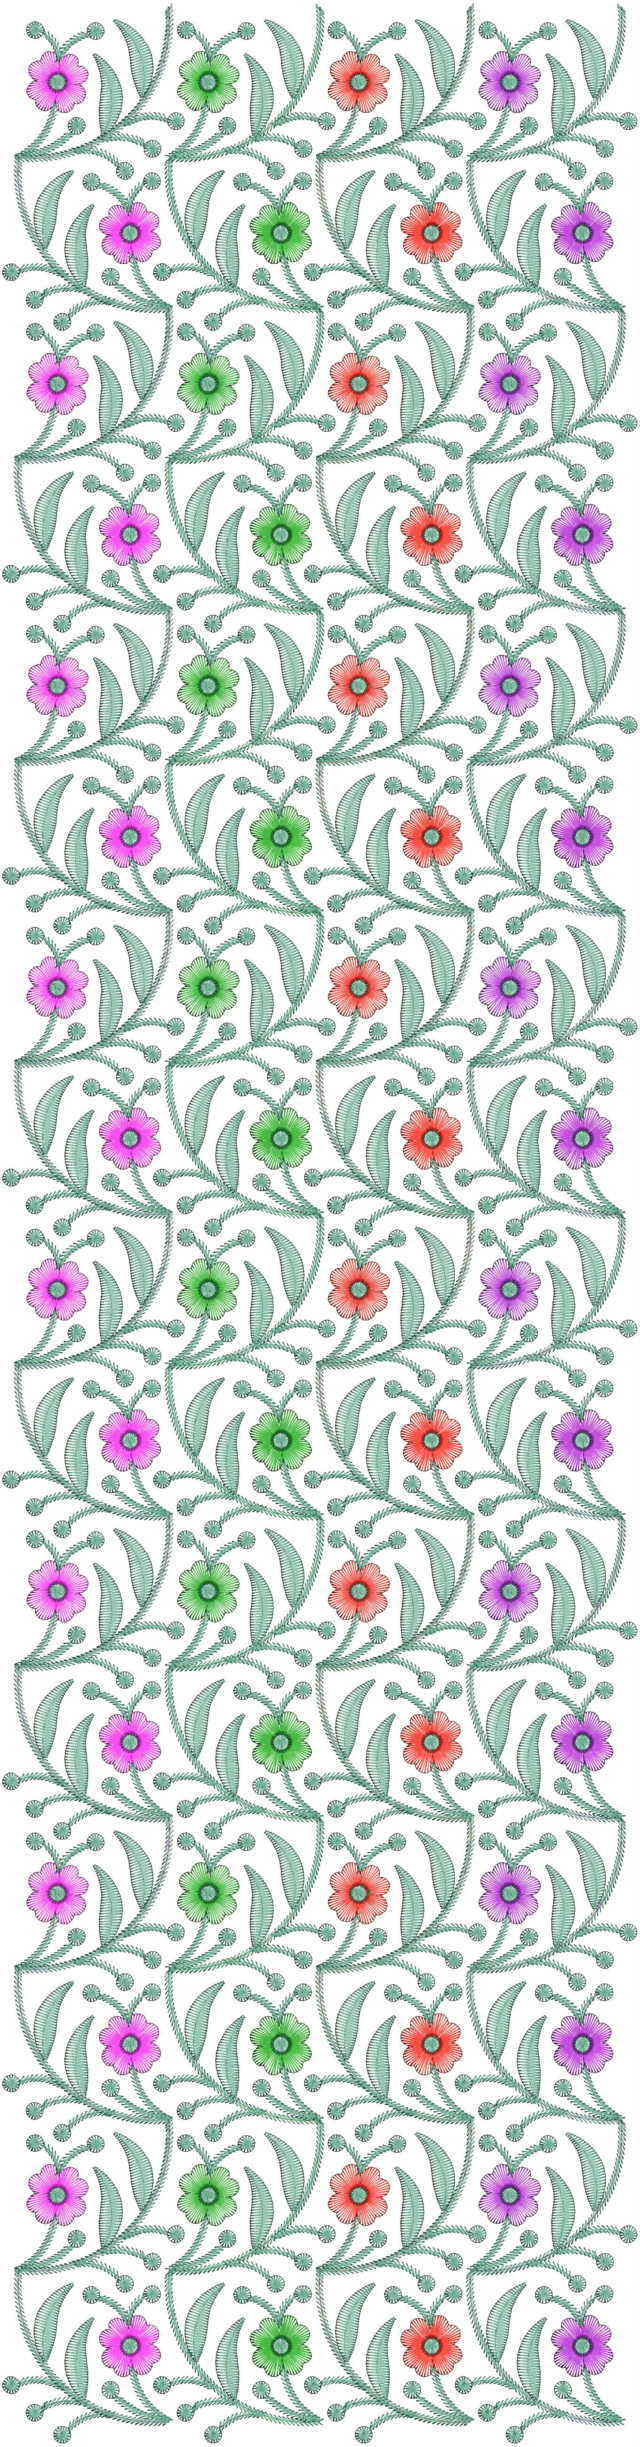 All over gamthi jaal concept garment embroidery designs